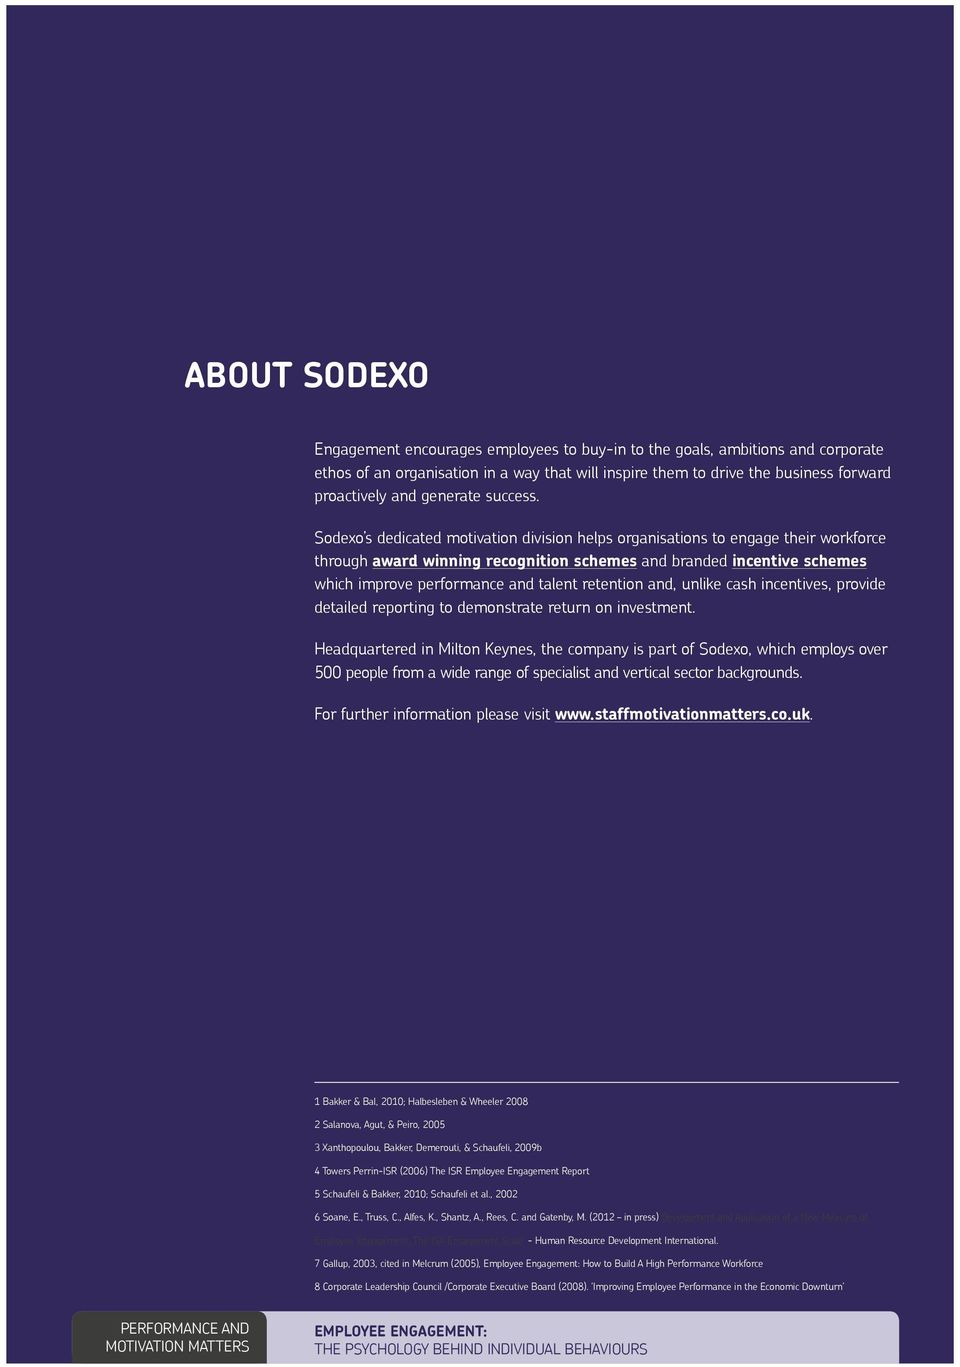 Sodexo s dedicated motivation division helps organisations to engage their workforce through award winning recognition schemes and branded incentive schemes which improve performance and talent